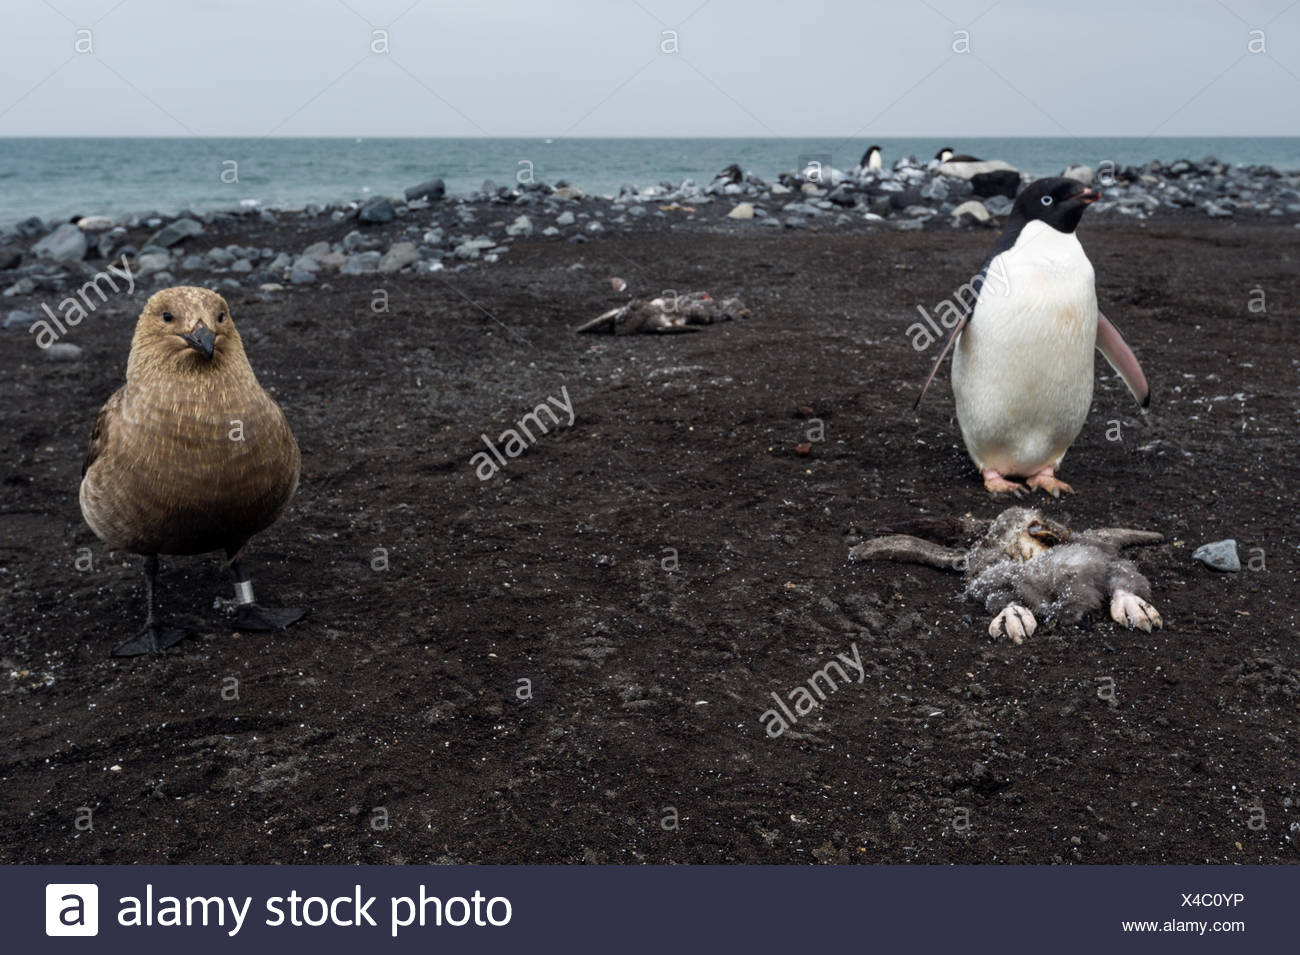 A South Polar Skua near a dead Adelie Penguin chick and it's parent on a beach in Antarctica. - Stock Image